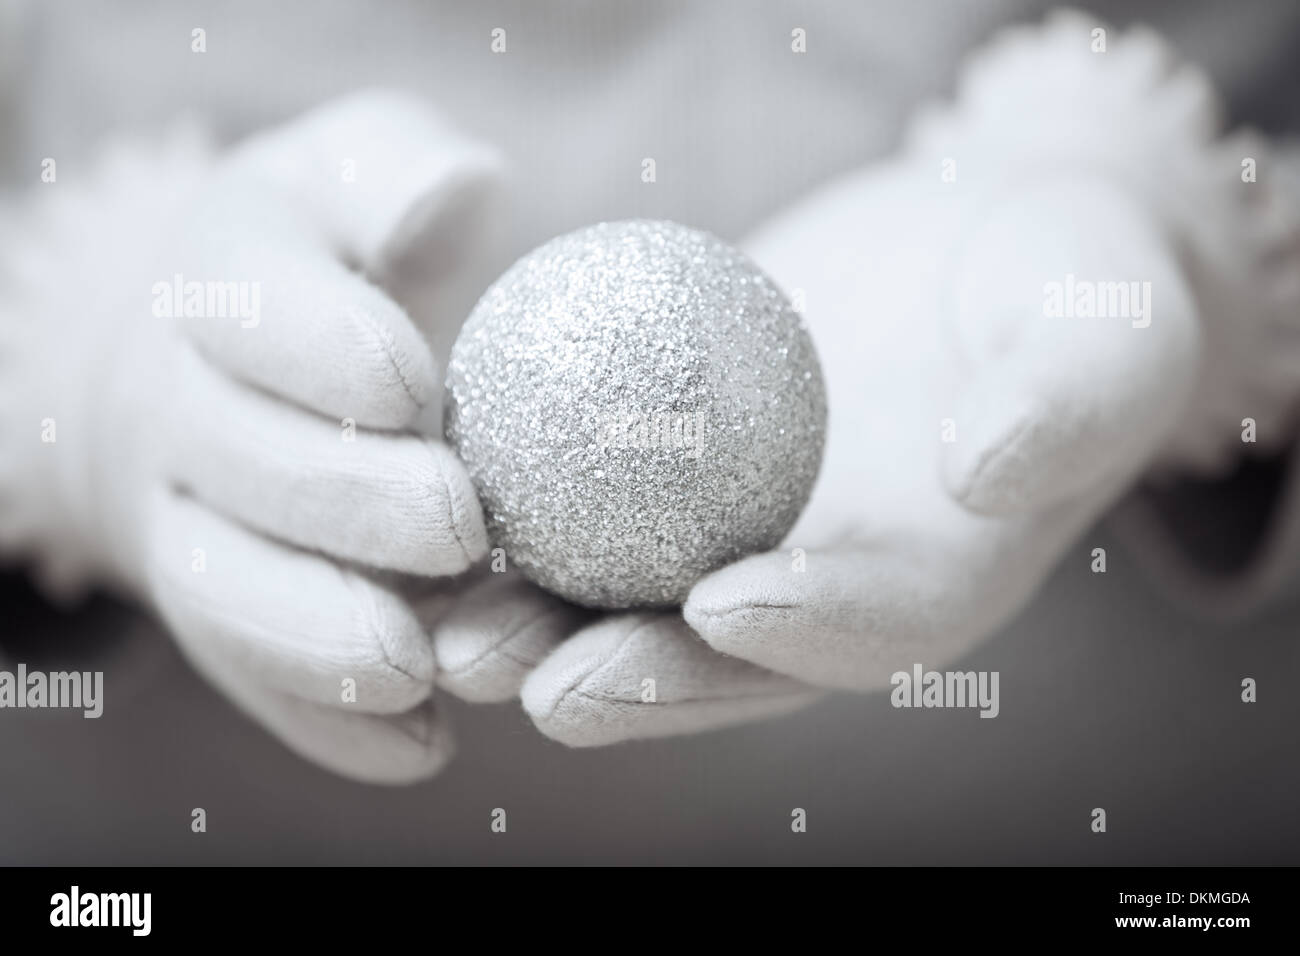 Human hands in mitten holding Christmas ball - Stock Image